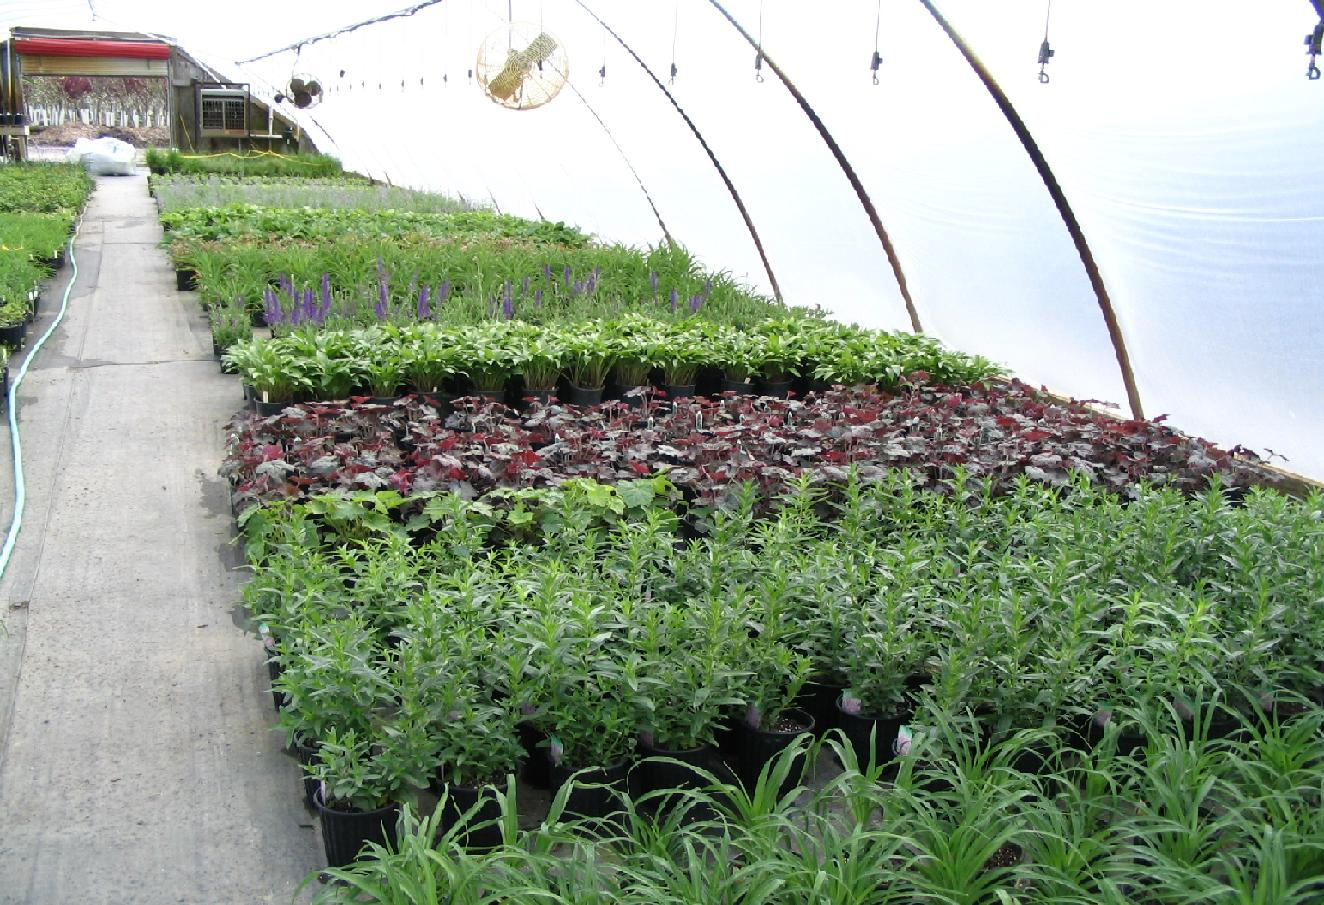 As Time Progressed Marshall Trees Nursery Began To Grow And The Product Mix Quickly Changed From Primarily Evergreens Shade Ornamental